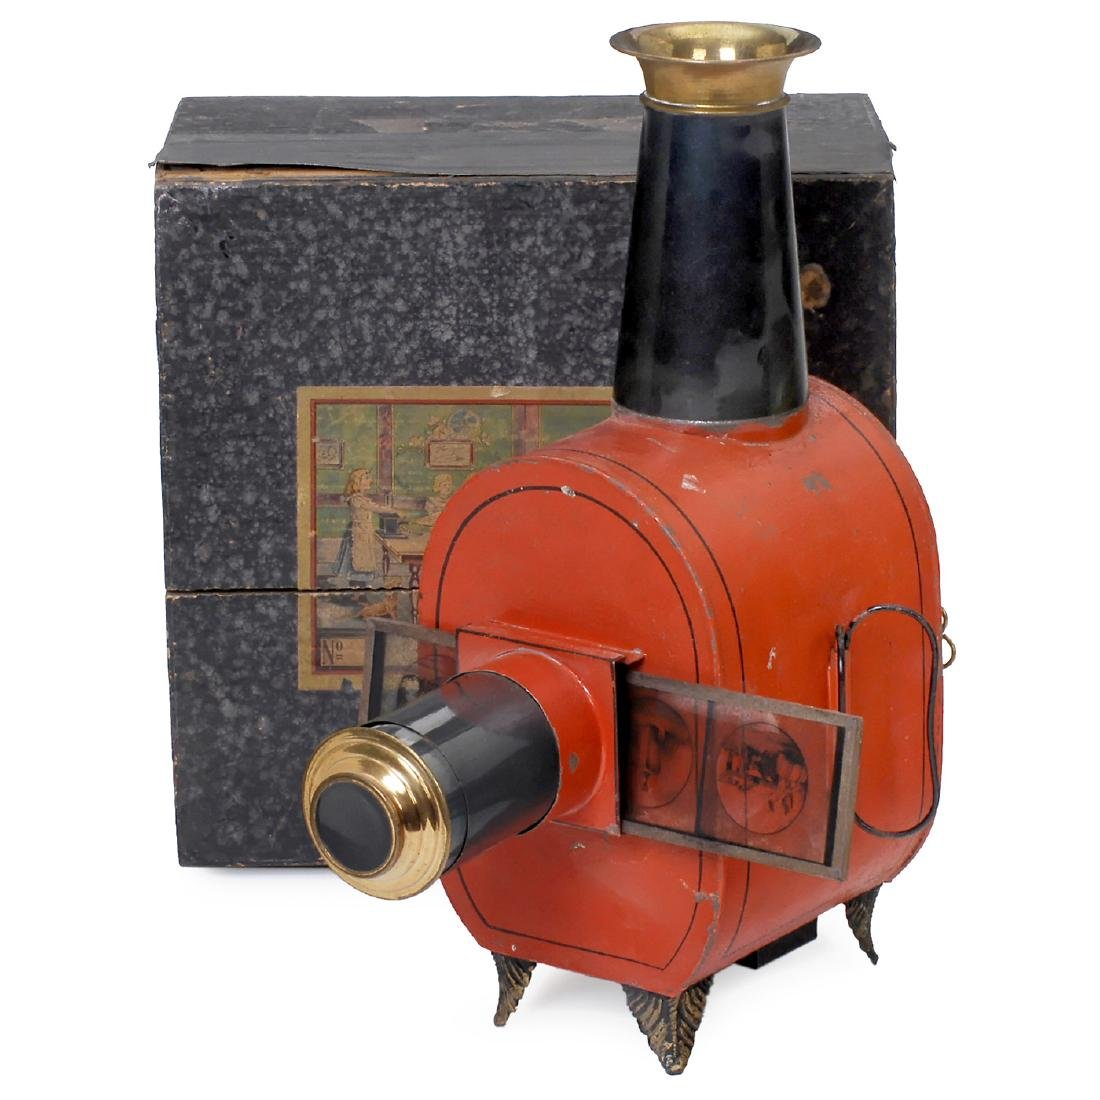 Handsome Nr. 290 Magic Lantern by Carette, 1890